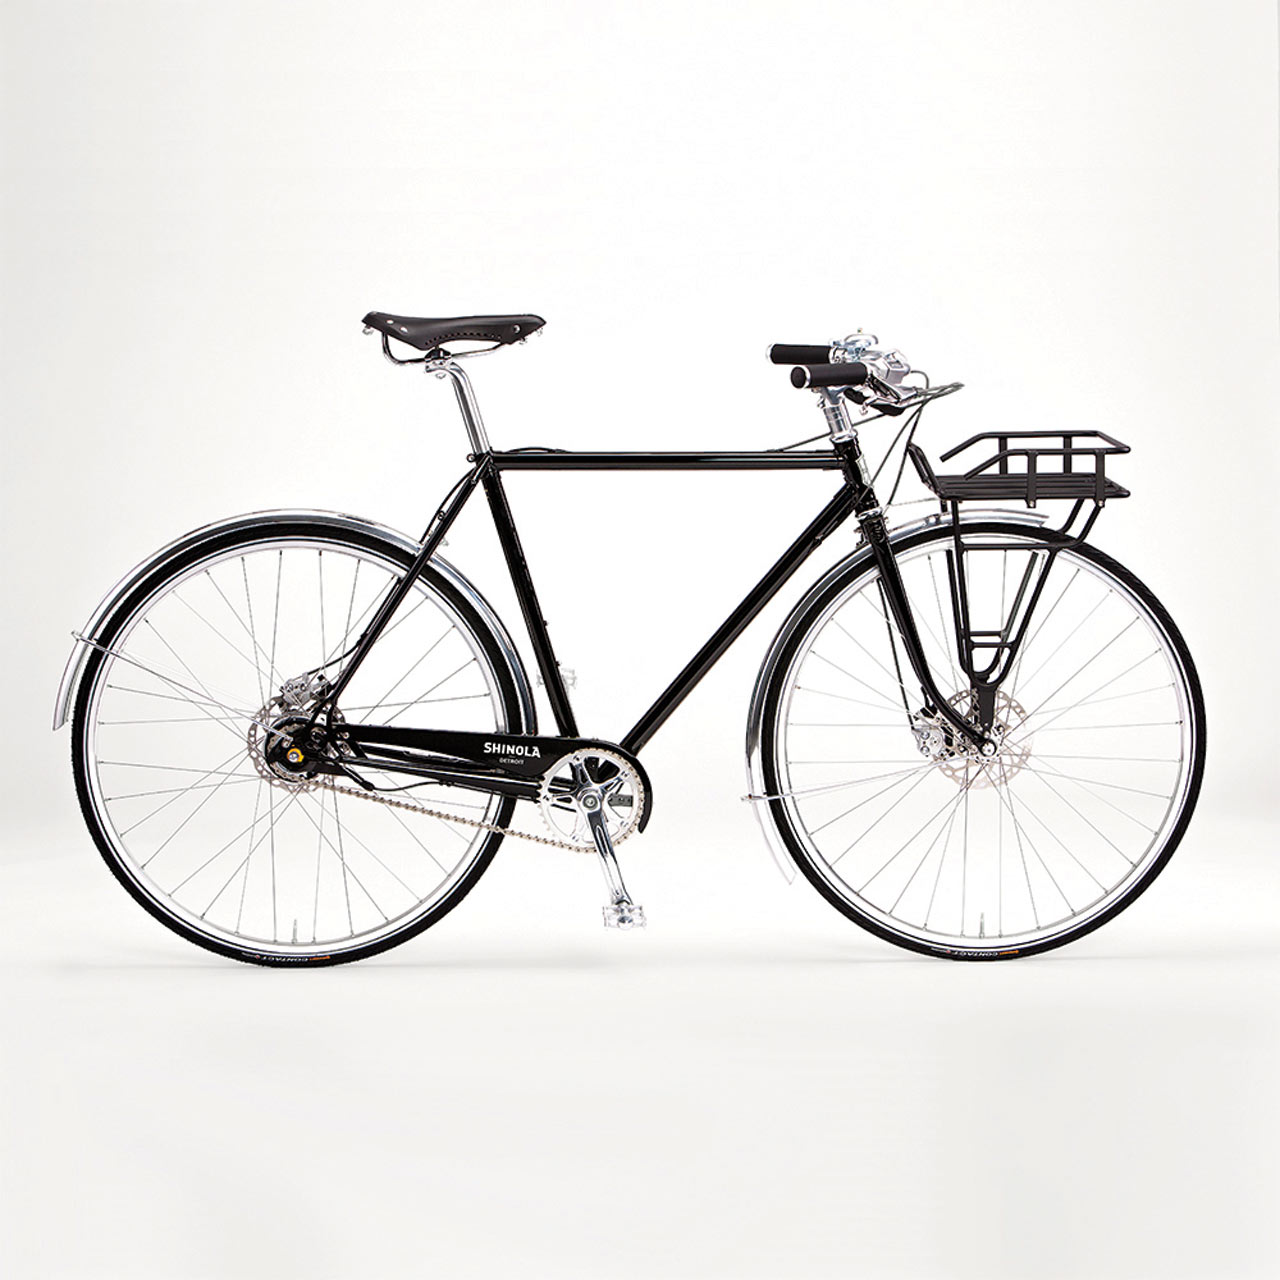 Runwell bicycle